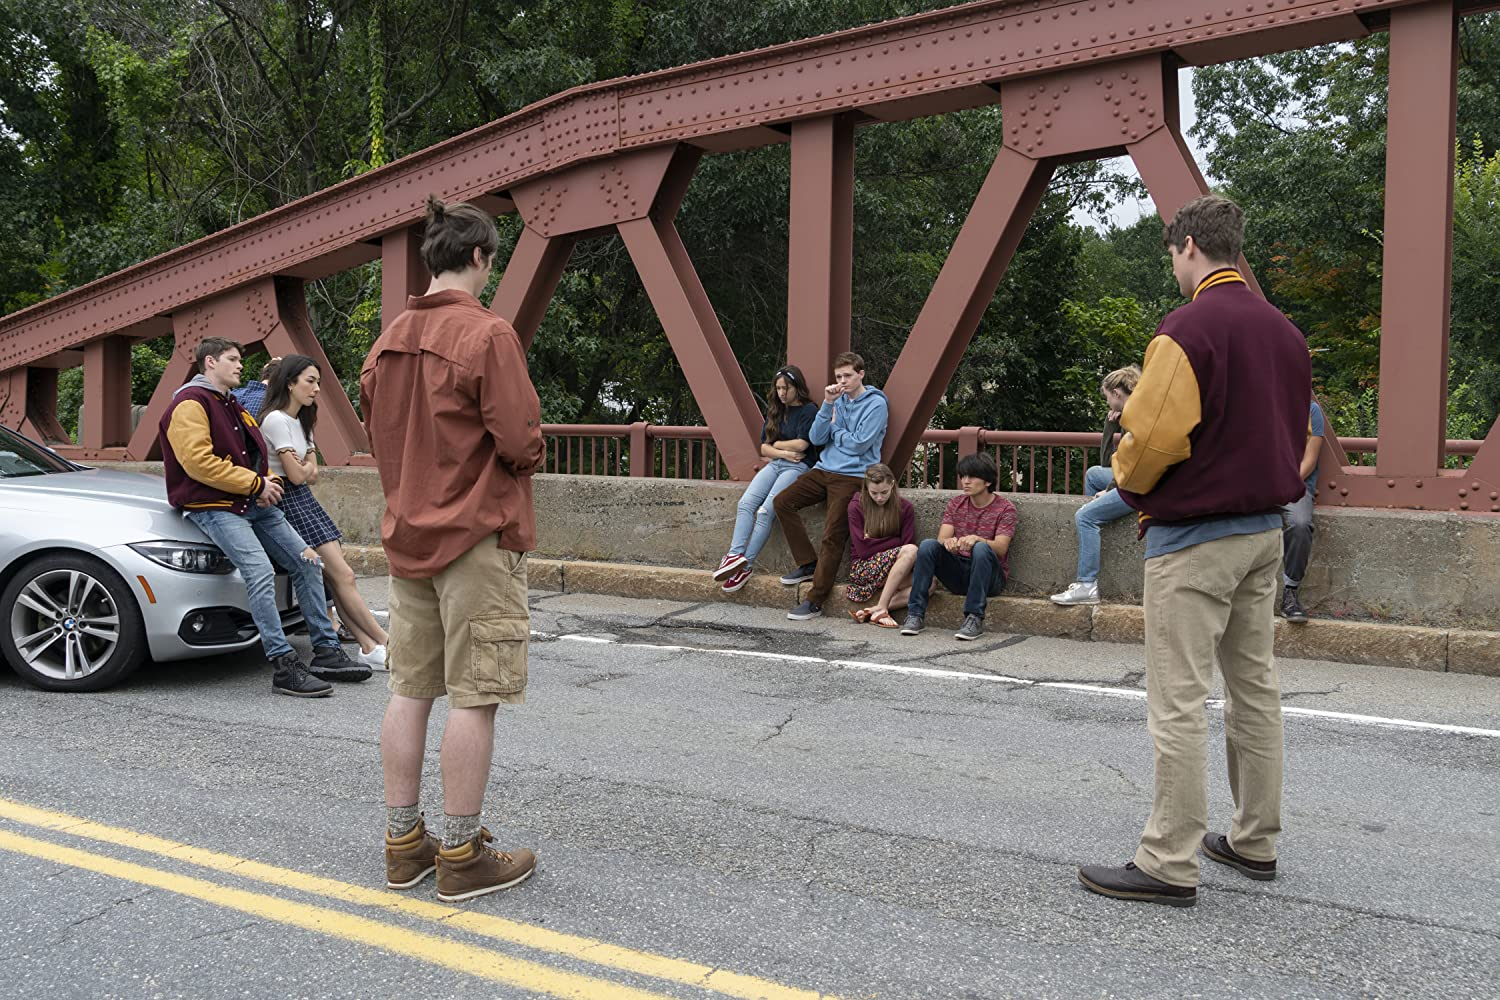 Jack Mulhern, Kathryn Newton, José Julián, Sean Berdy, Gideon Adlon, Alex MacNicoll, Natasha Liu Bordizzo, and Kristine Froseth in The Society (2019)